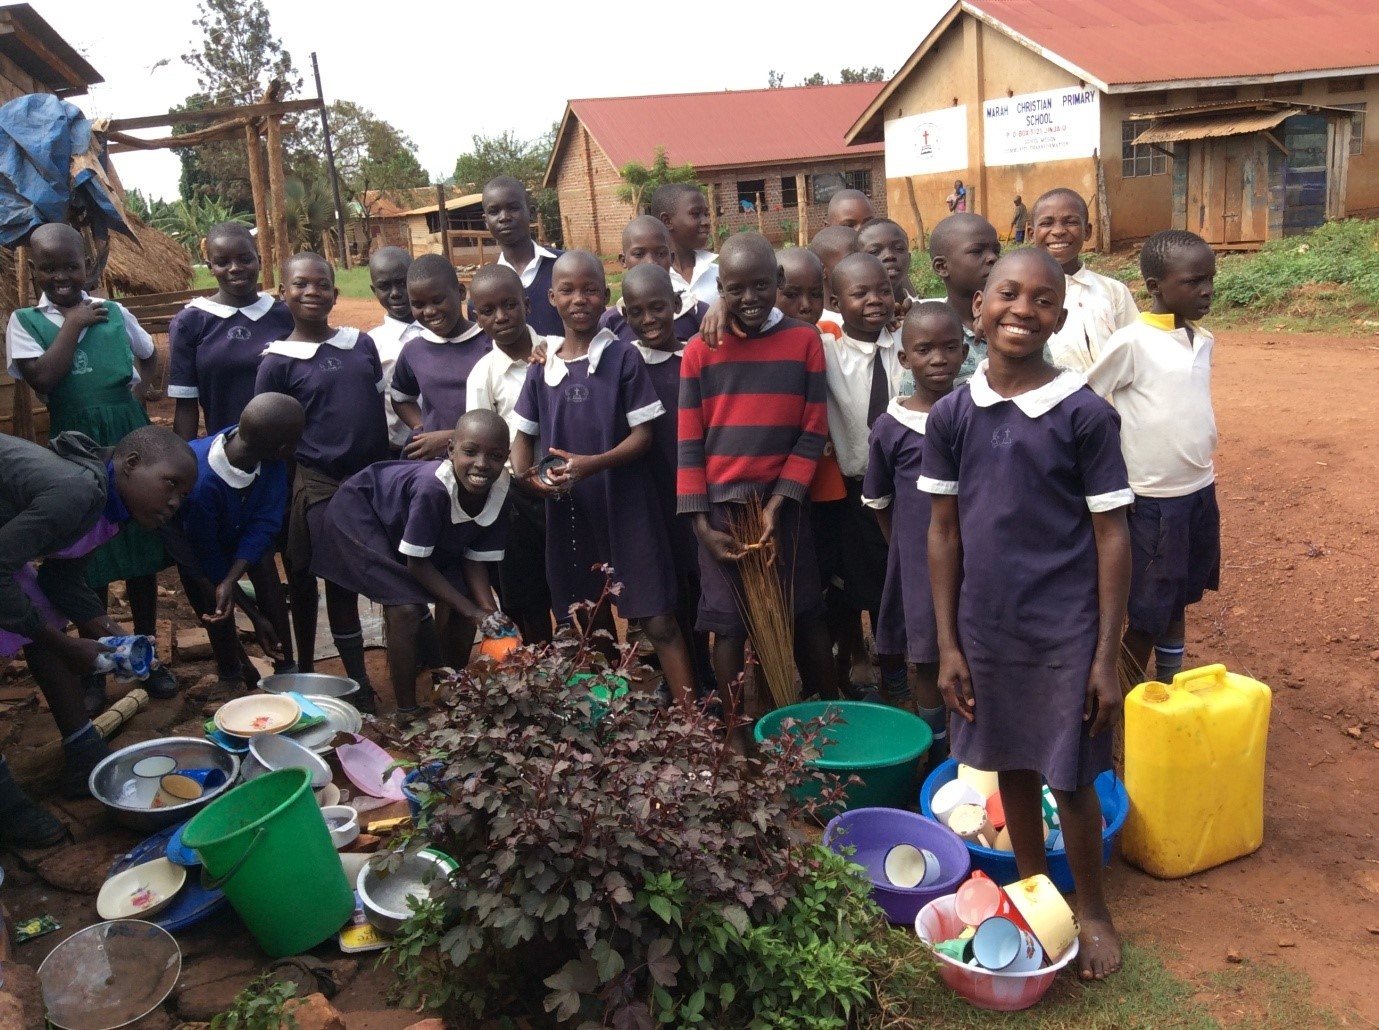 student-outreach-team-serving-the-community-uganda